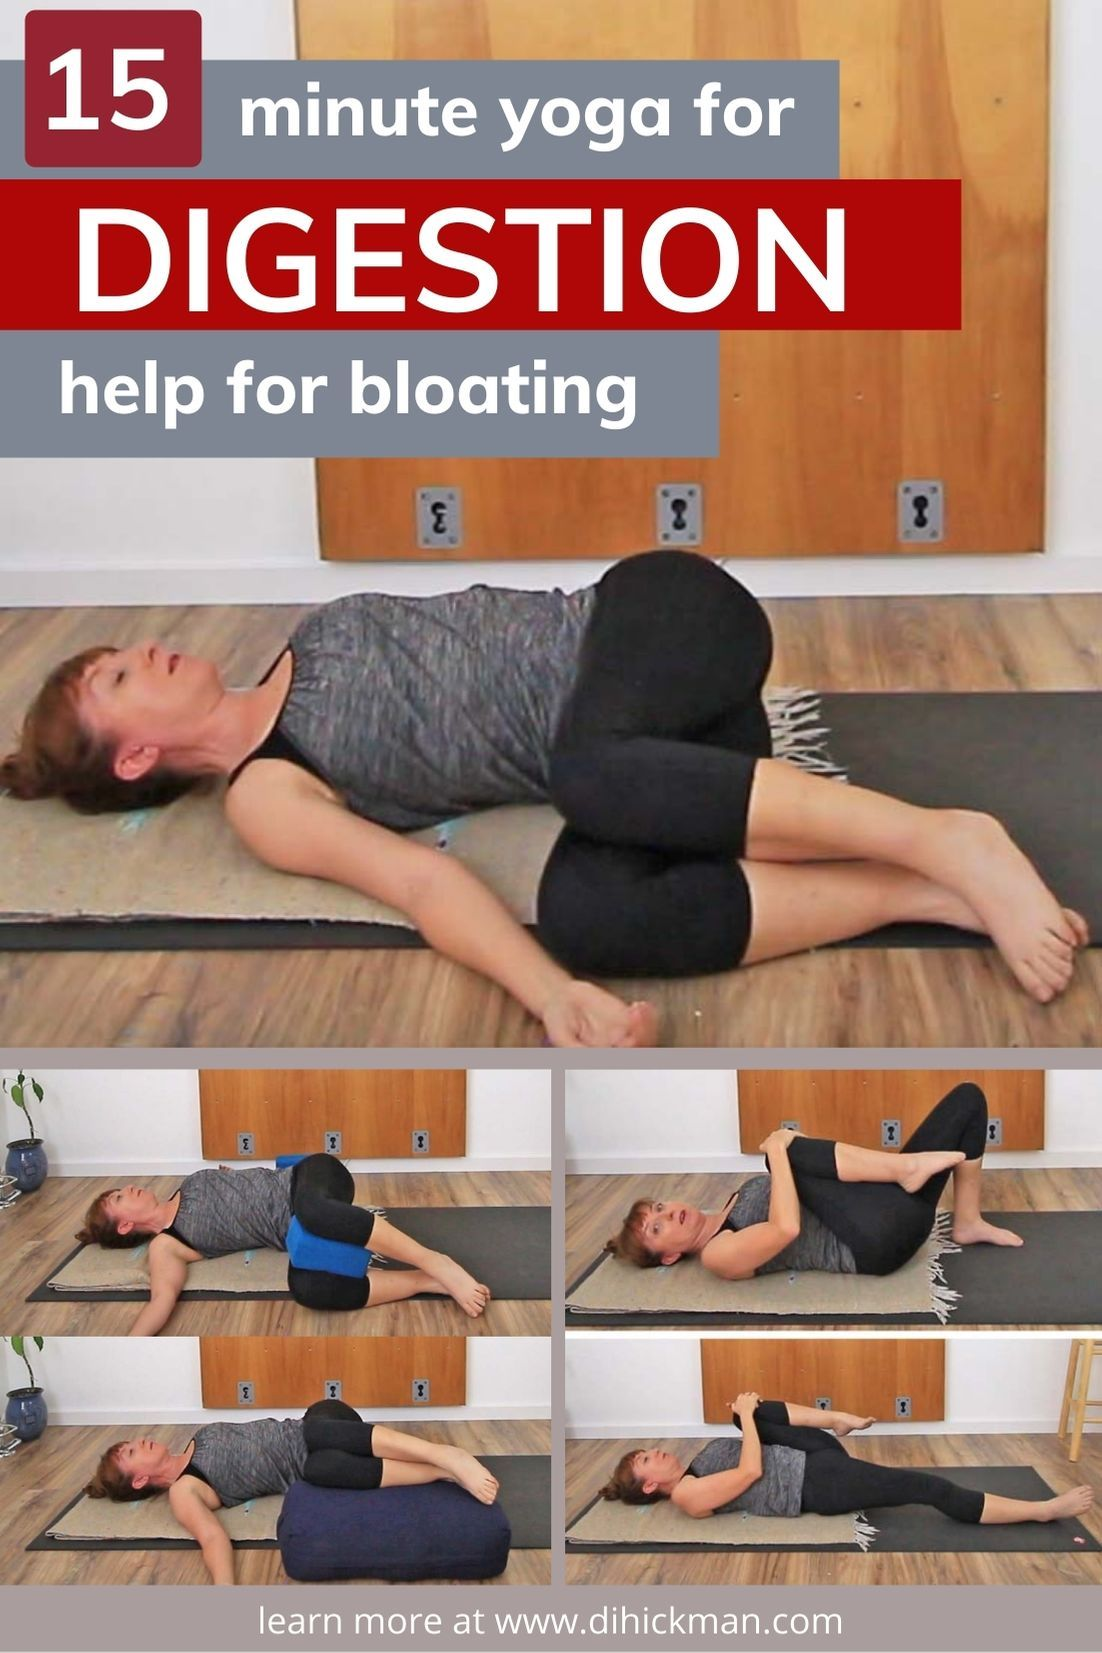 15 Minute Yoga For Digestion In 2021 Yoga Poses Relieve Gas And Bloating Yoga